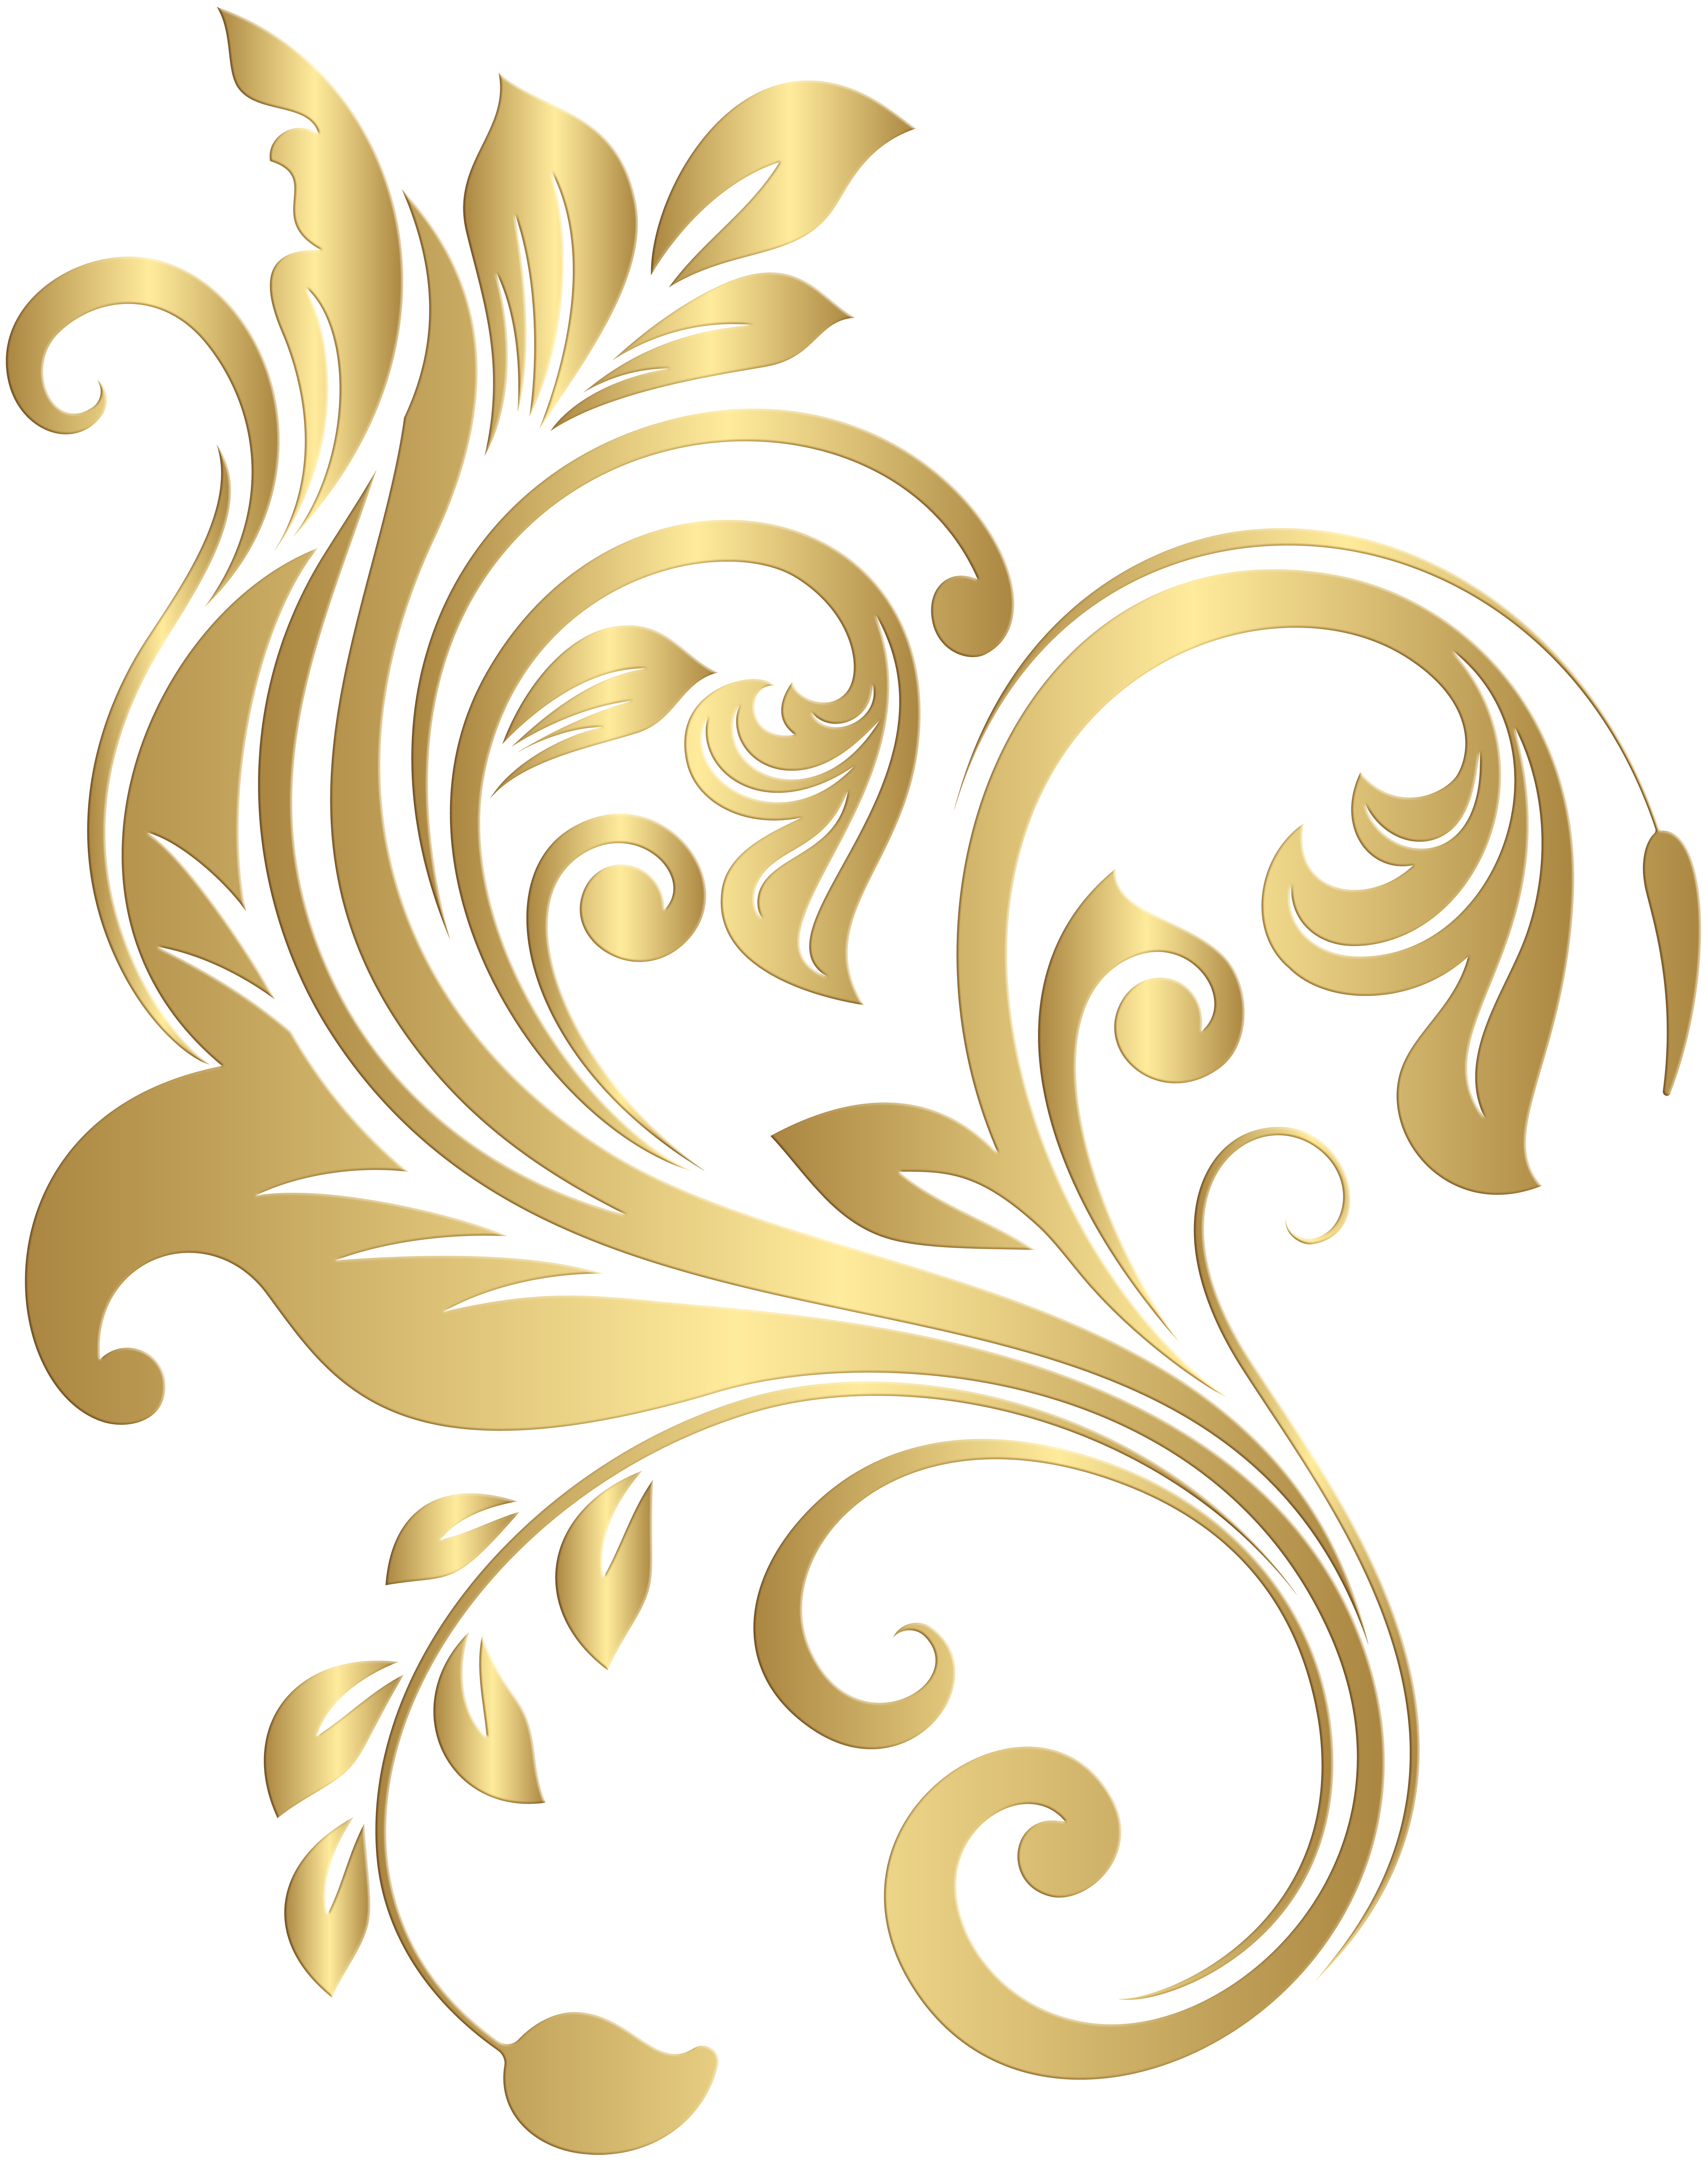 Decorative clipart decorative element. Gold png clip art